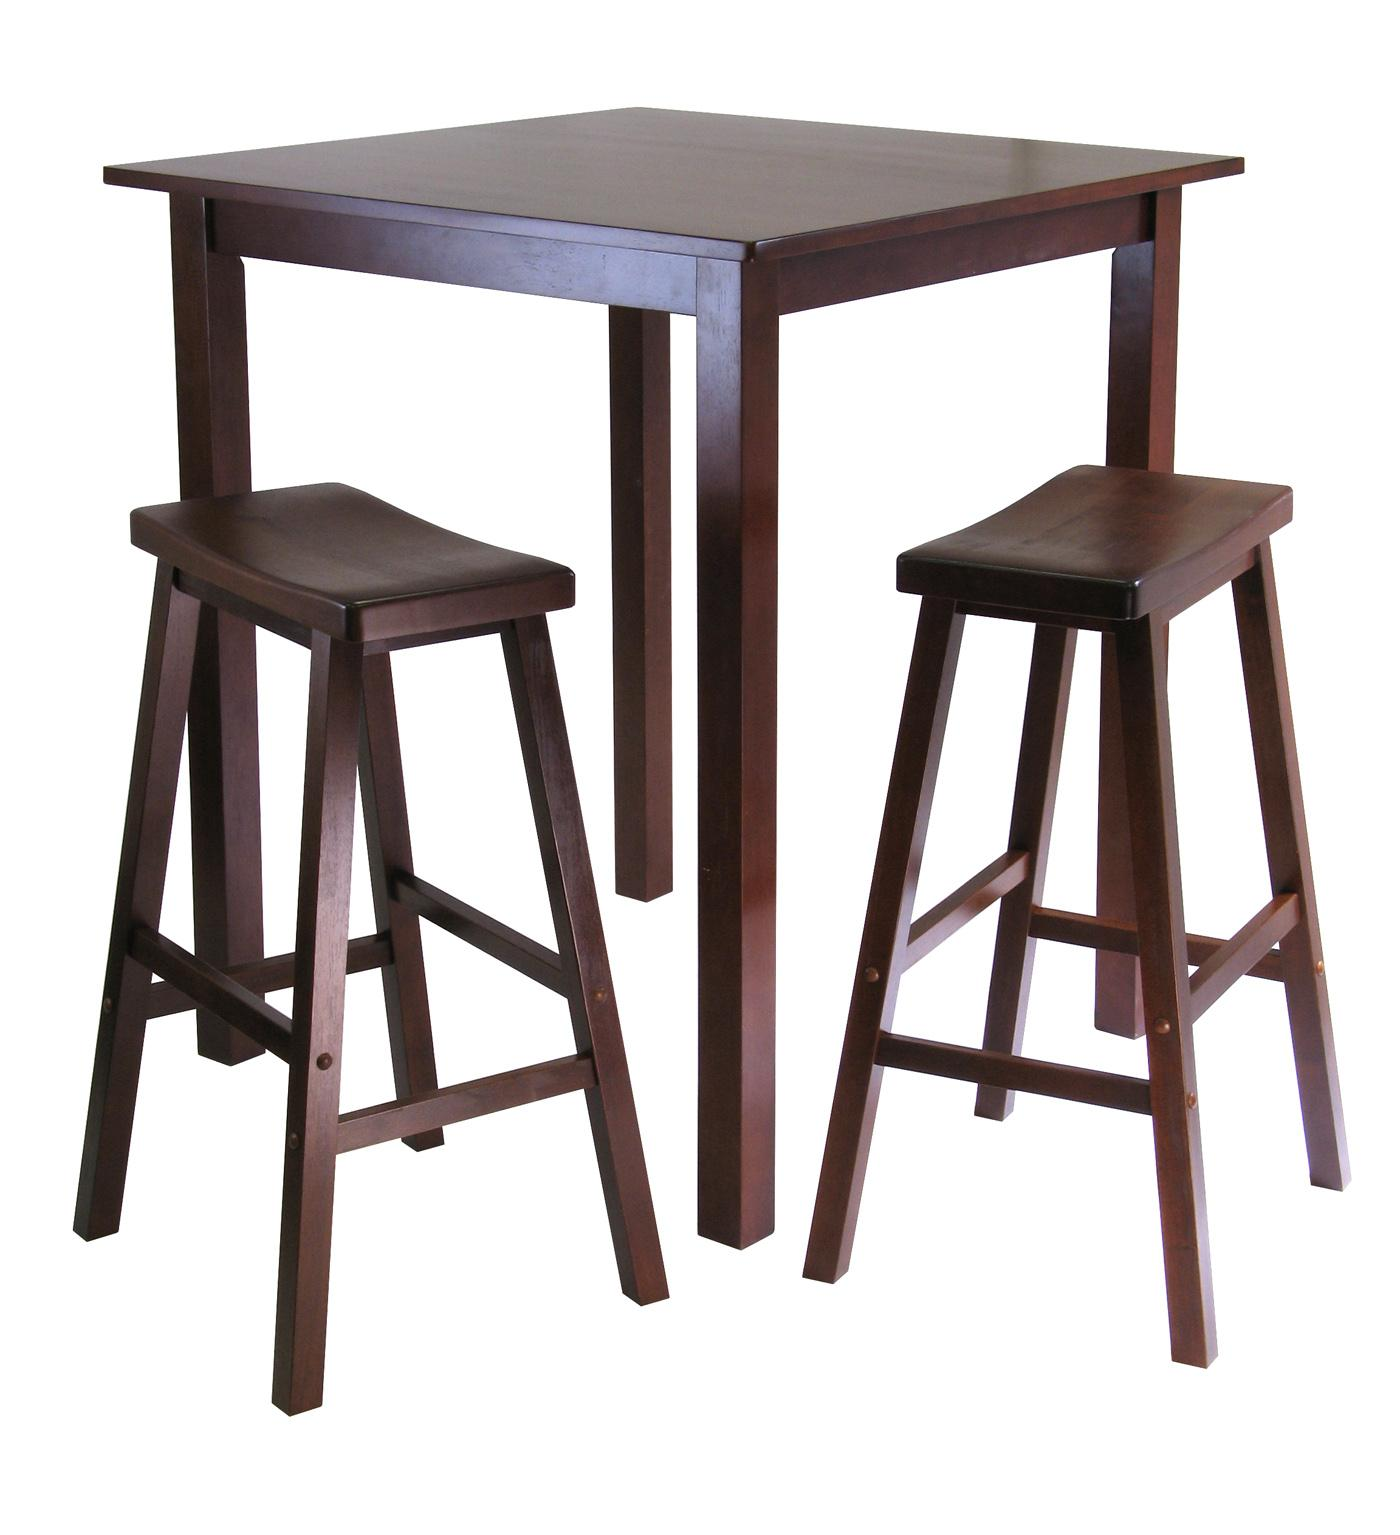 Winsome Parkland 3pc Square HighPub Table Set with 2  : 94349parkland3pcsquarehighpubtableset from www.ojcommerce.com size 1400 x 1535 jpeg 124kB